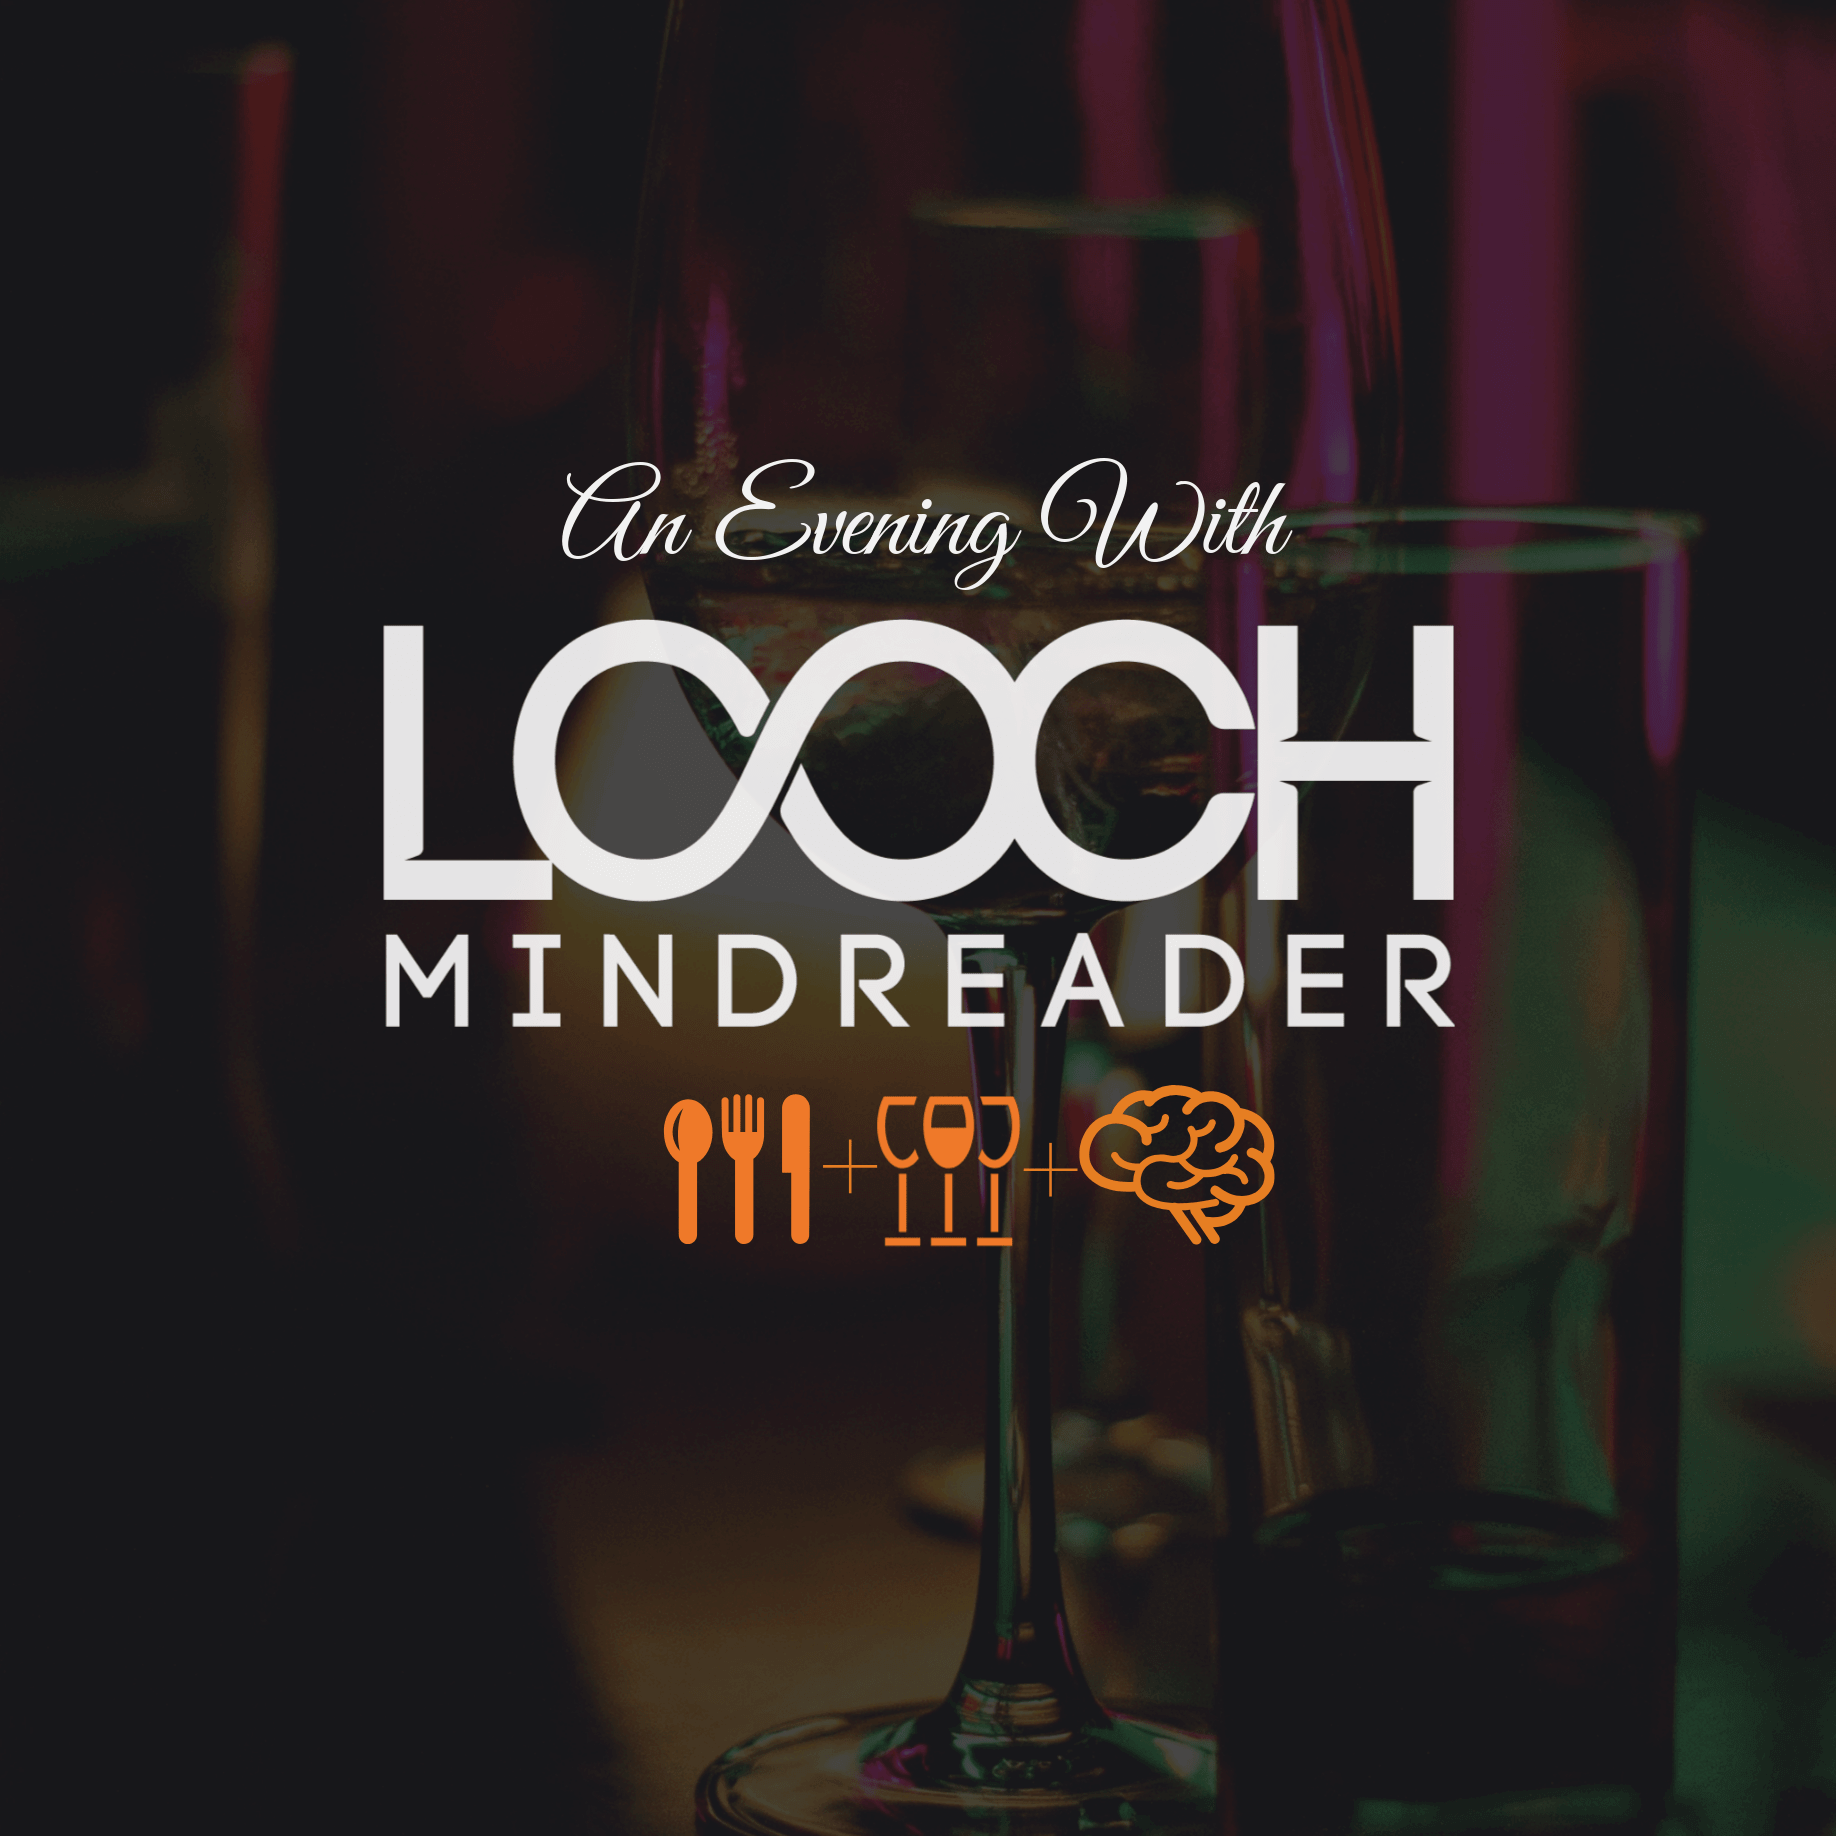 Image advertising Looch Mind Reader show in Caunton, Newark